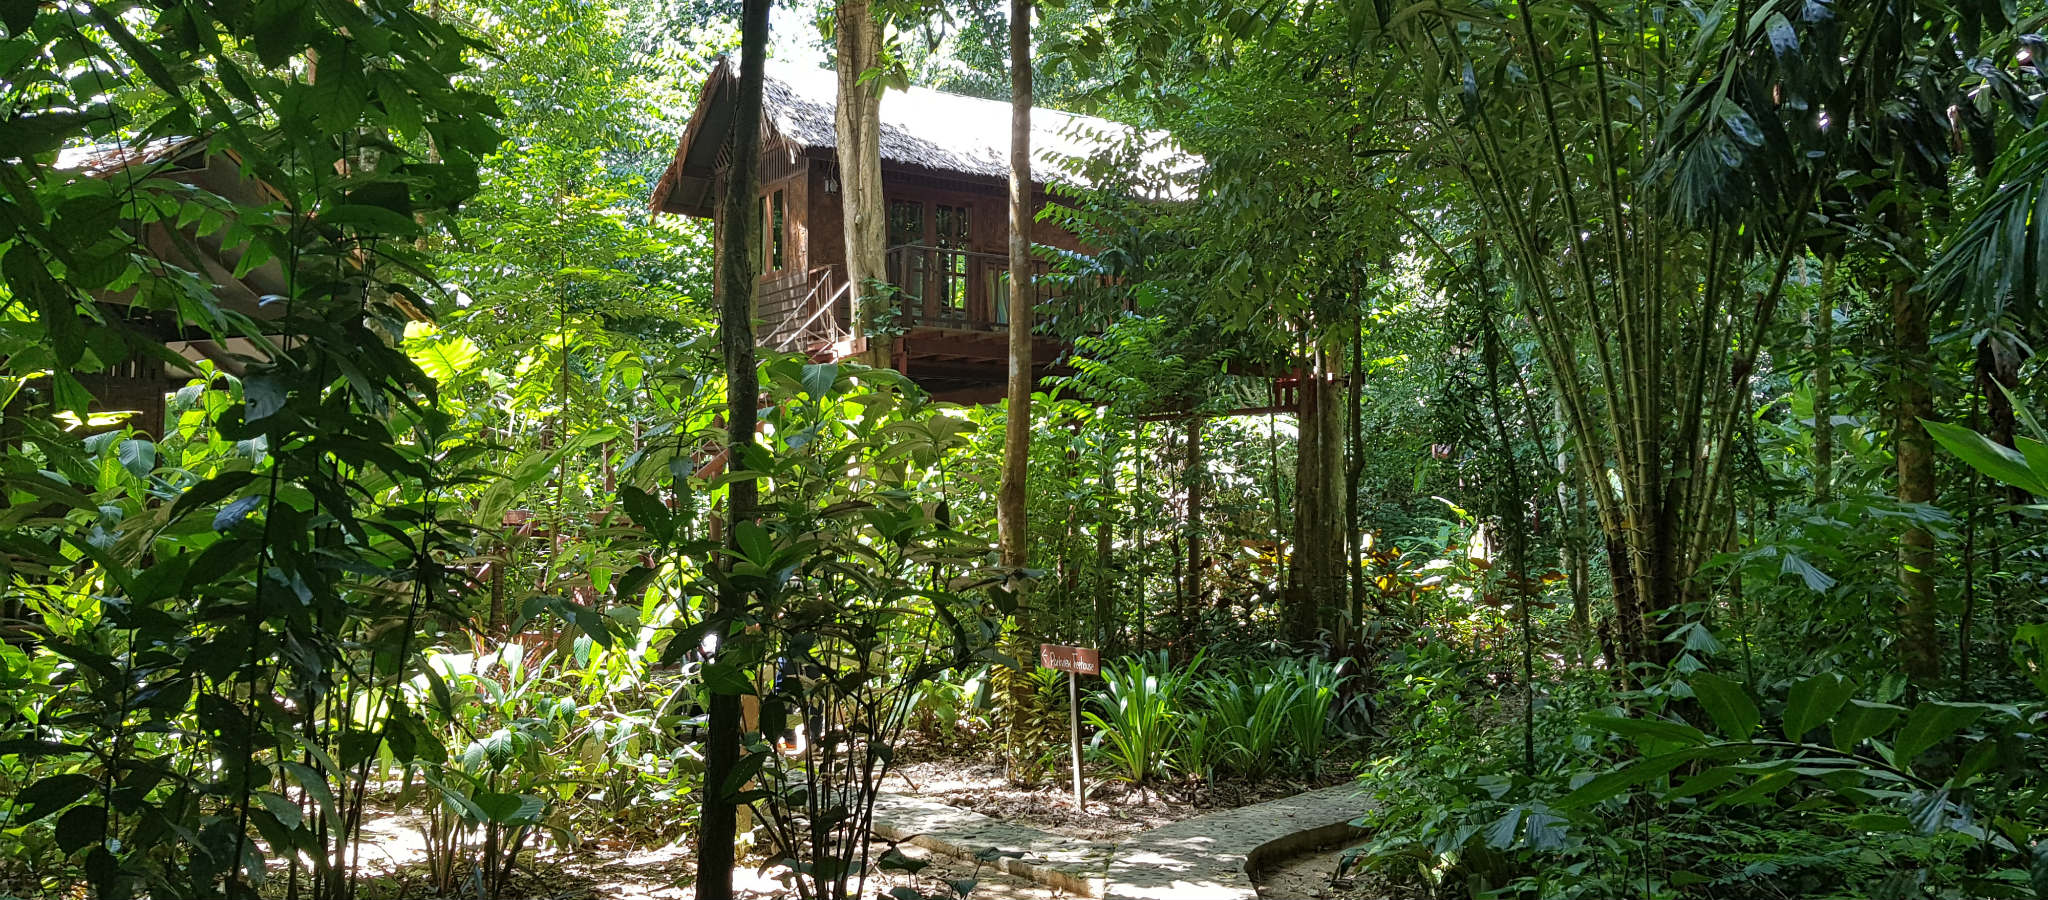 Tree house of Our Jungle House in Khao Sok, Thailand